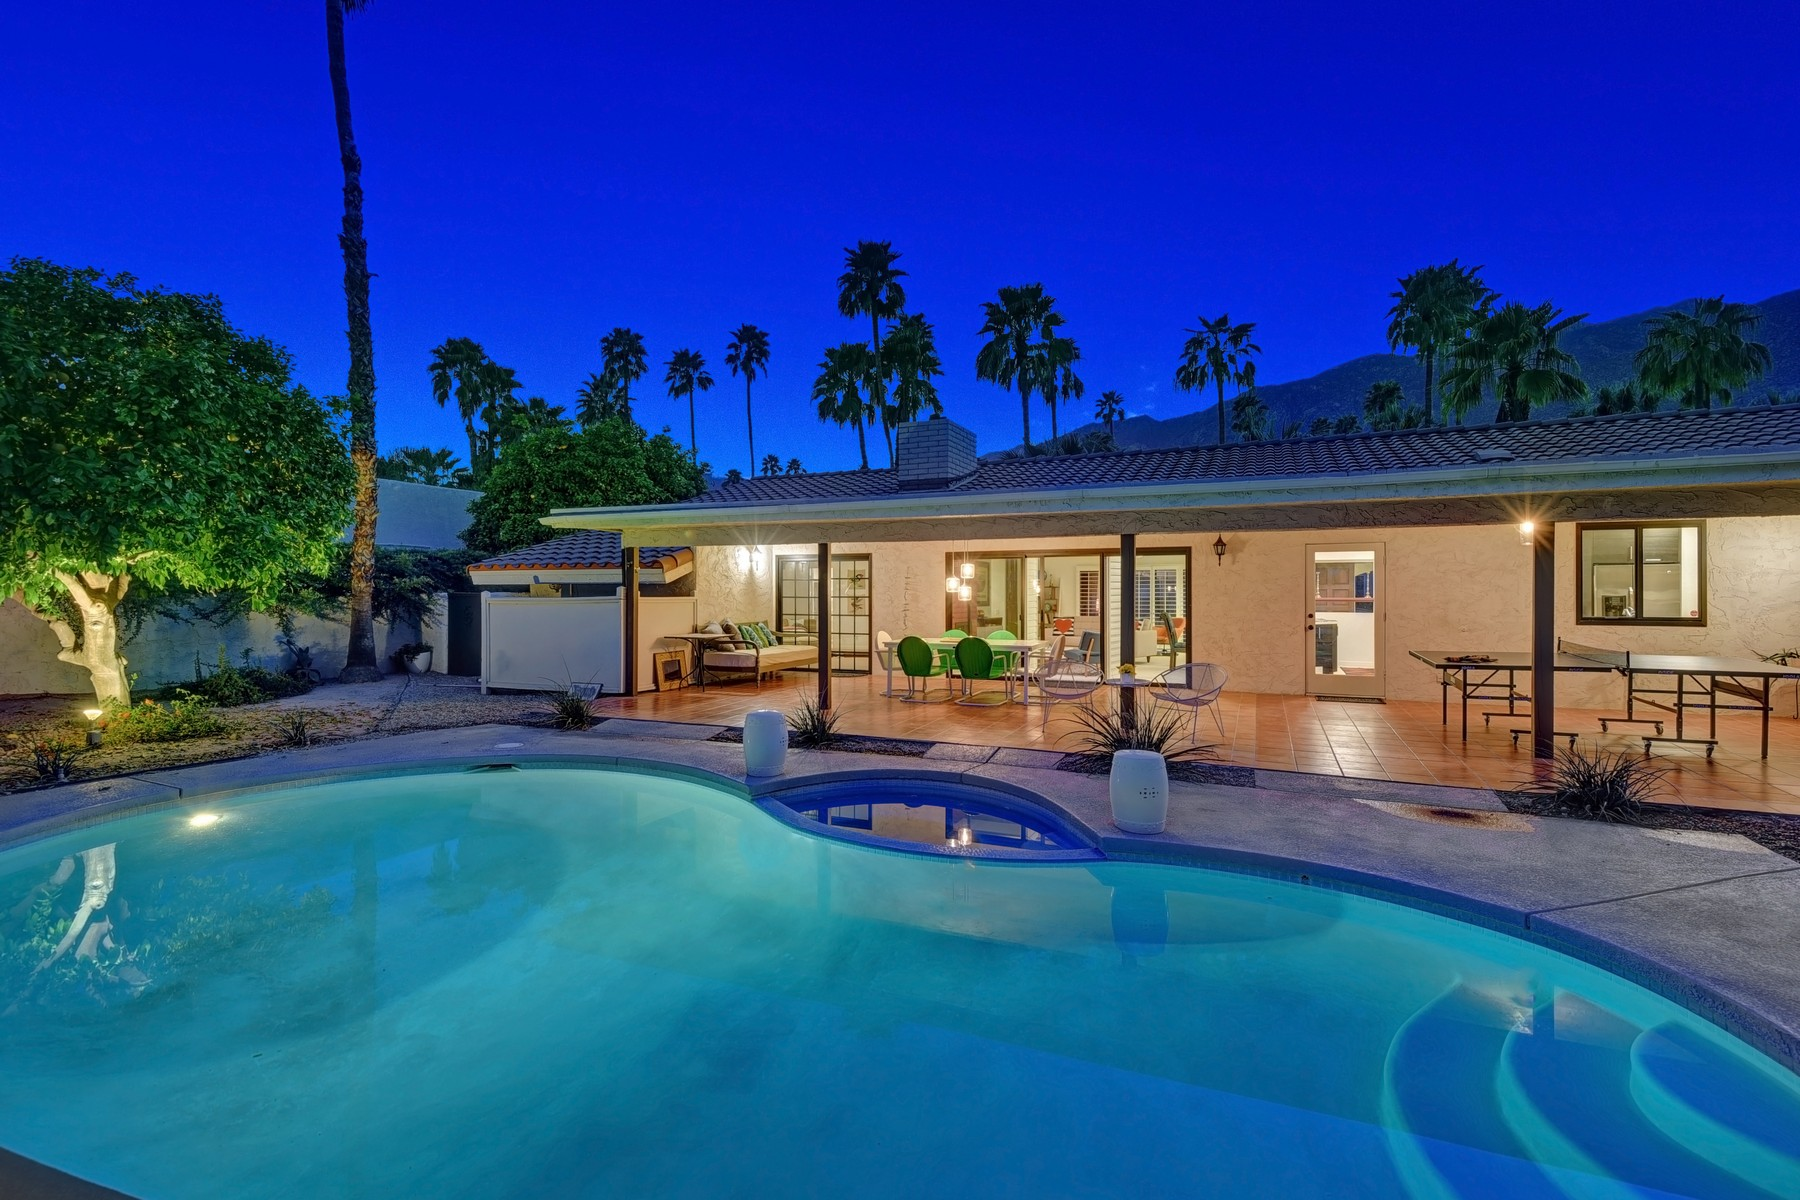 Single Family Home for Sale at 1970 South Joshua Tree Place Palm Springs, California, 92264 United States